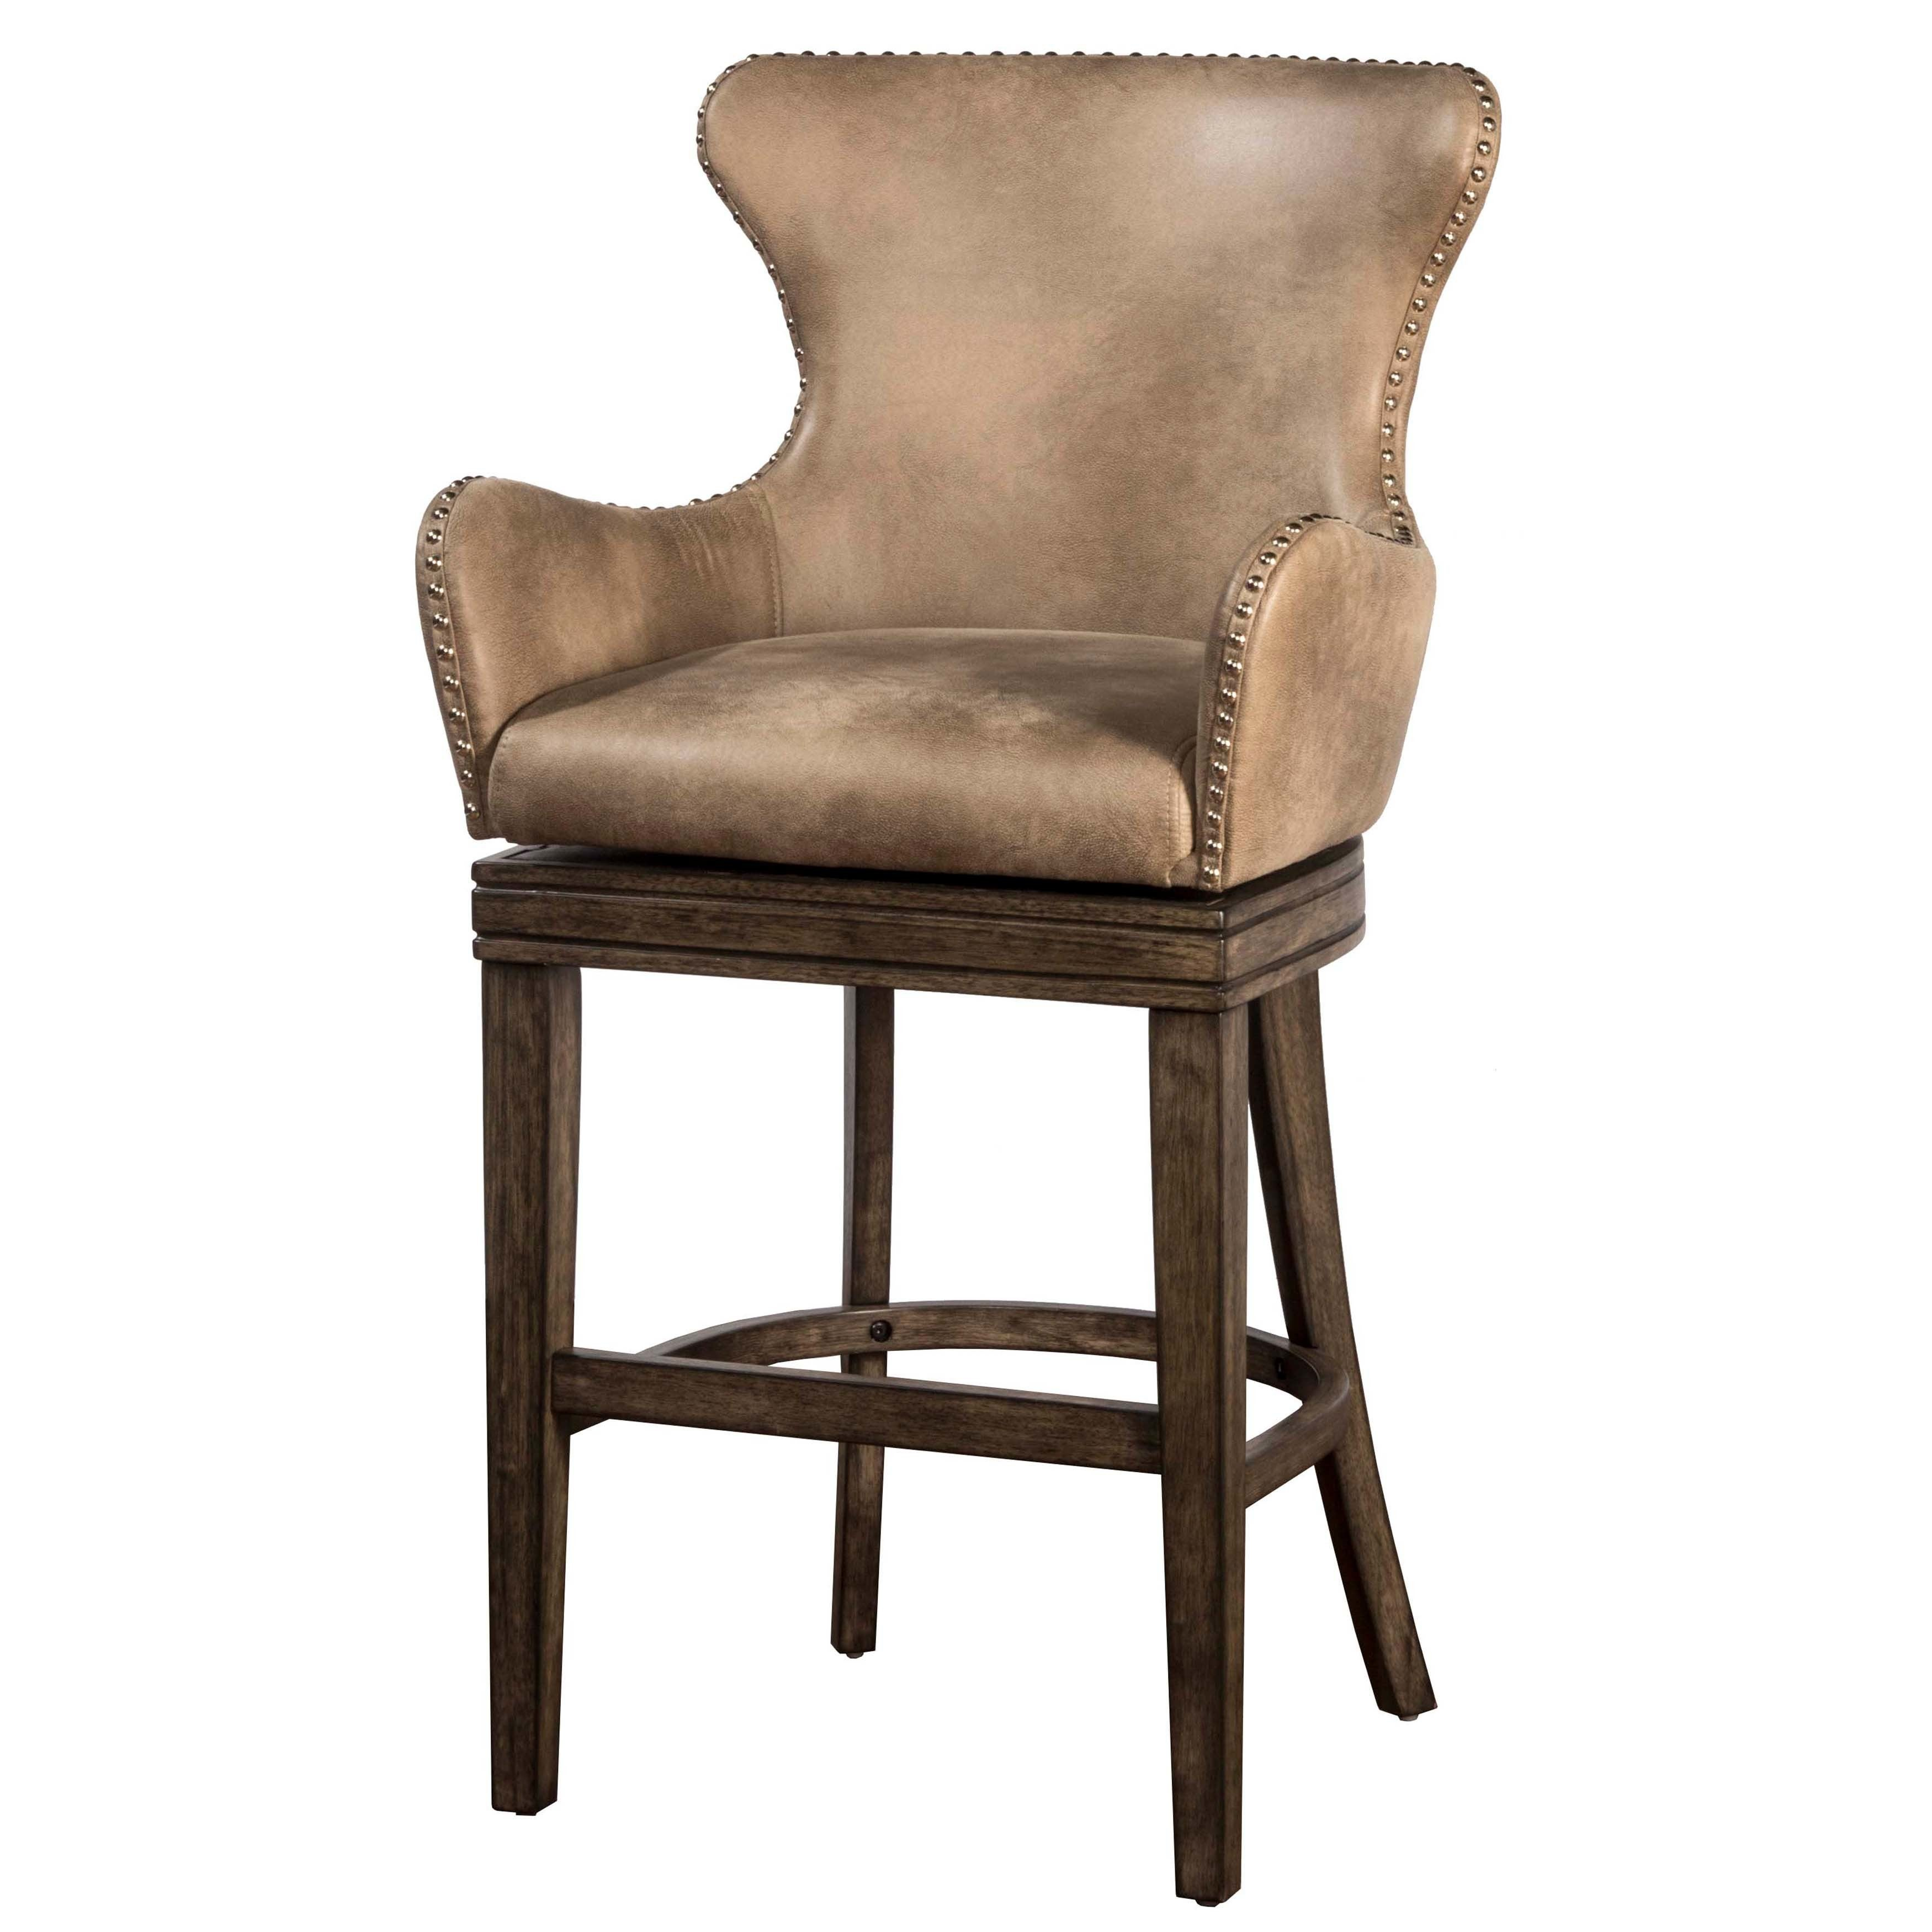 Tremendous Hillsdale Furniture Caydena Rustic Grey Swivel Counter Stool Ibusinesslaw Wood Chair Design Ideas Ibusinesslaworg